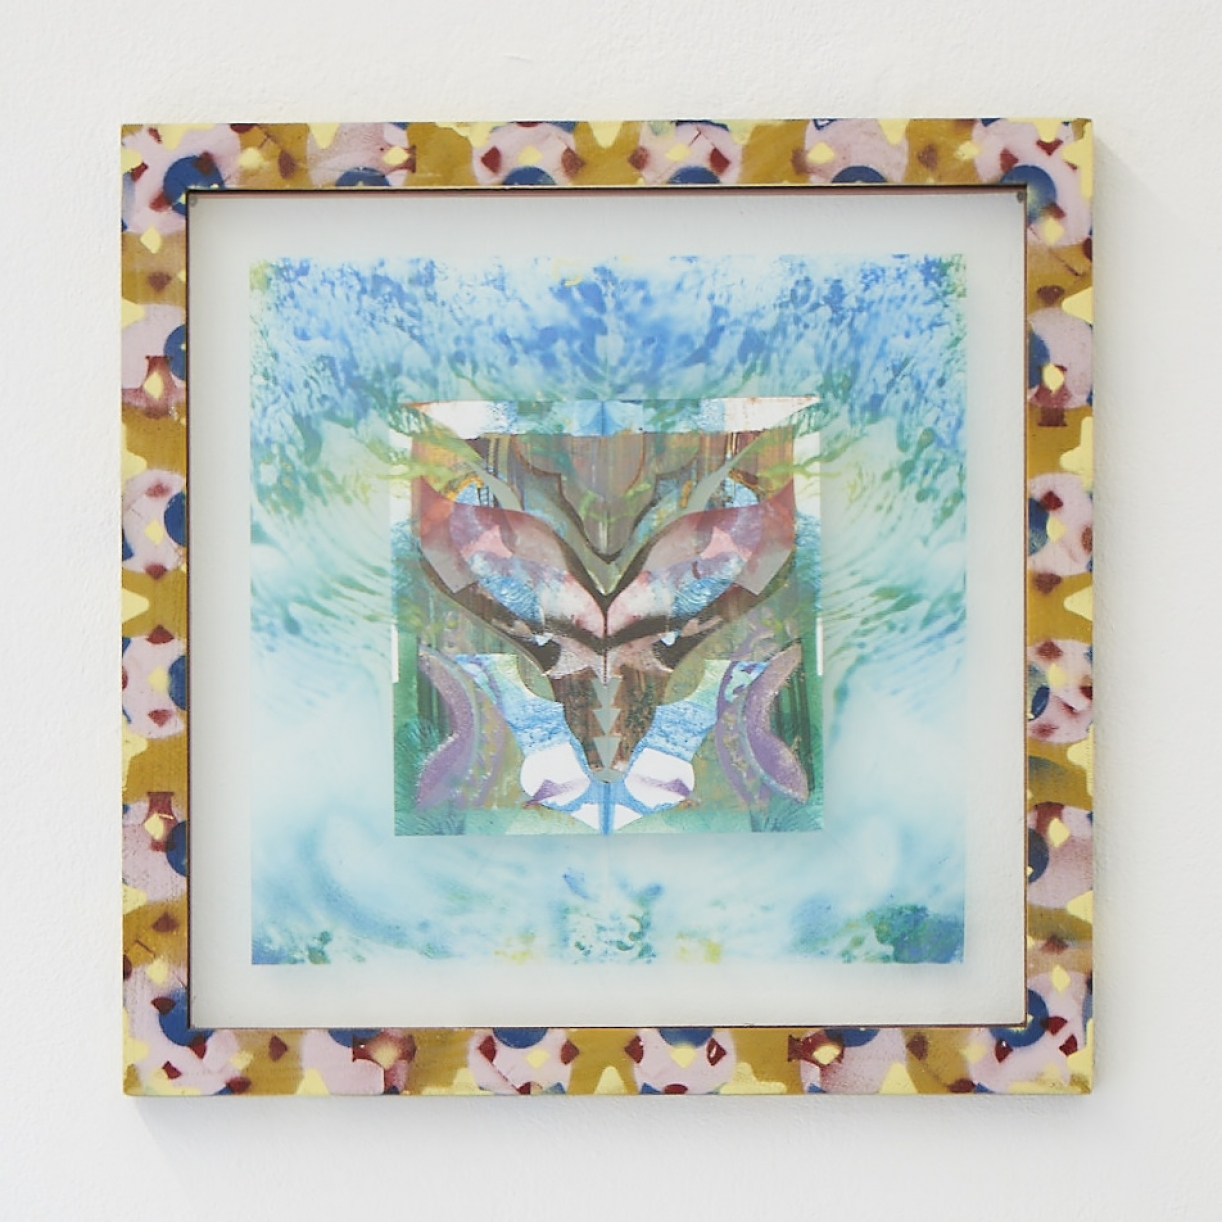 Moritz Altmann, ene, 2017, mixed media on paper and transparency, sprayed frame, 40,5 x 40,5 cm